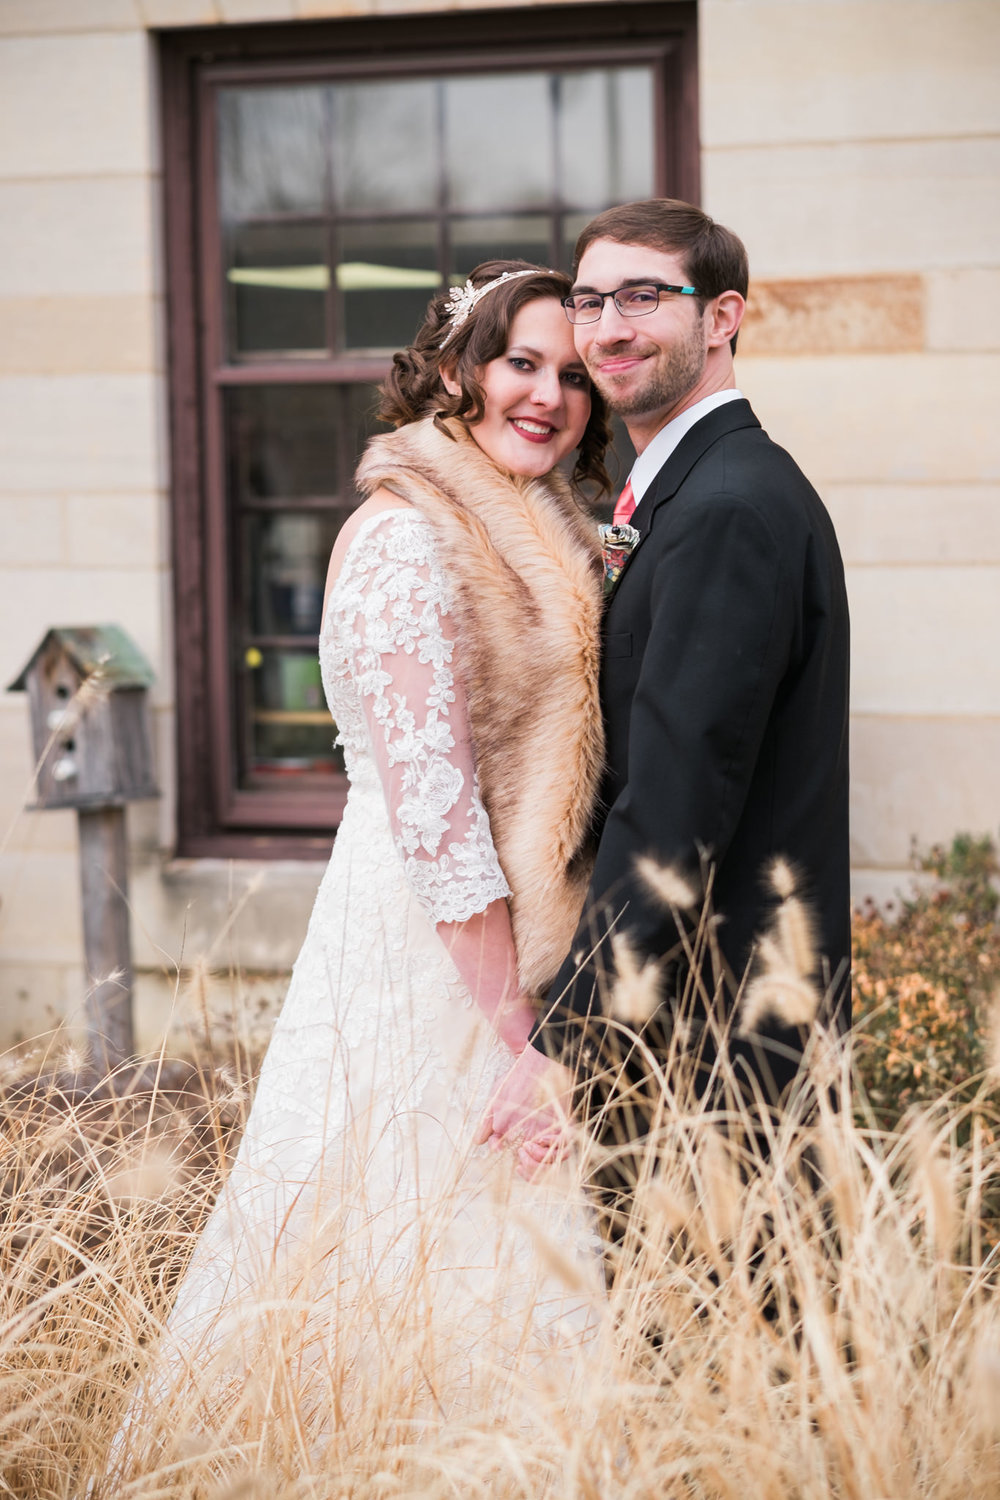 2017.01.01_Liz&Matt_Wedding_Blog_0016.jpg